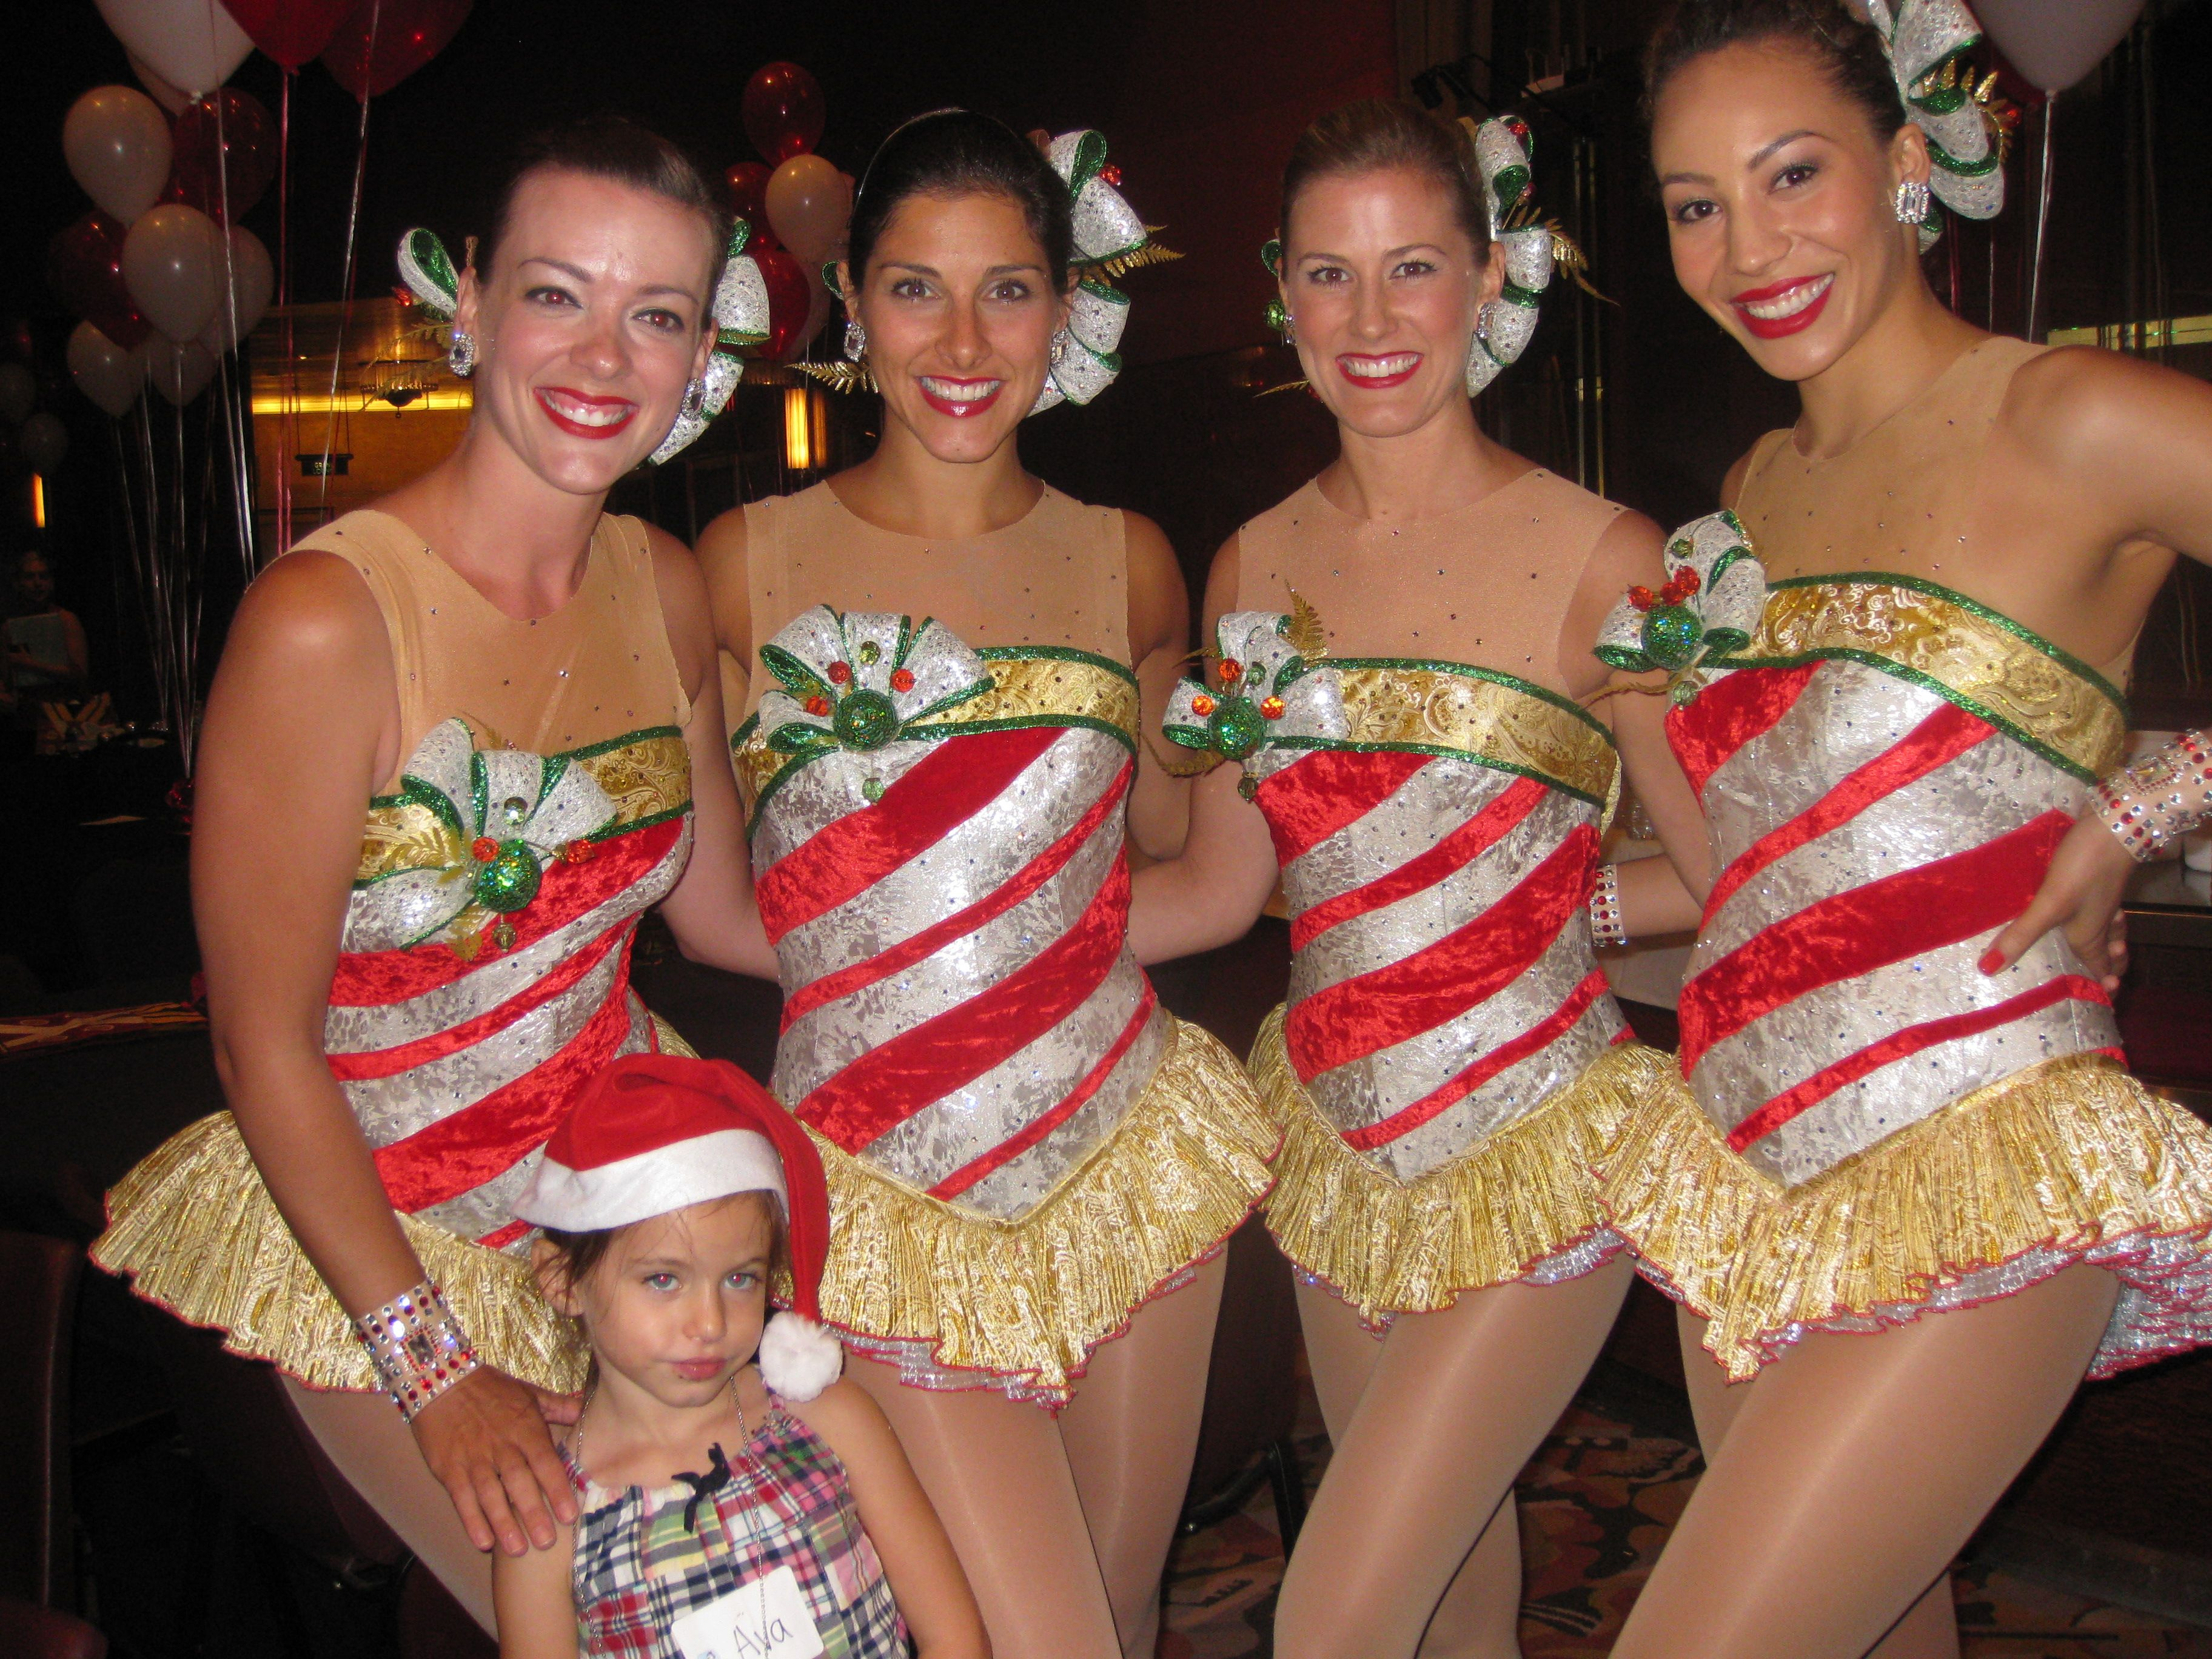 Pin by Michelle Medley on Let\'s Dance | Pinterest | Costumes, Ribbon ...